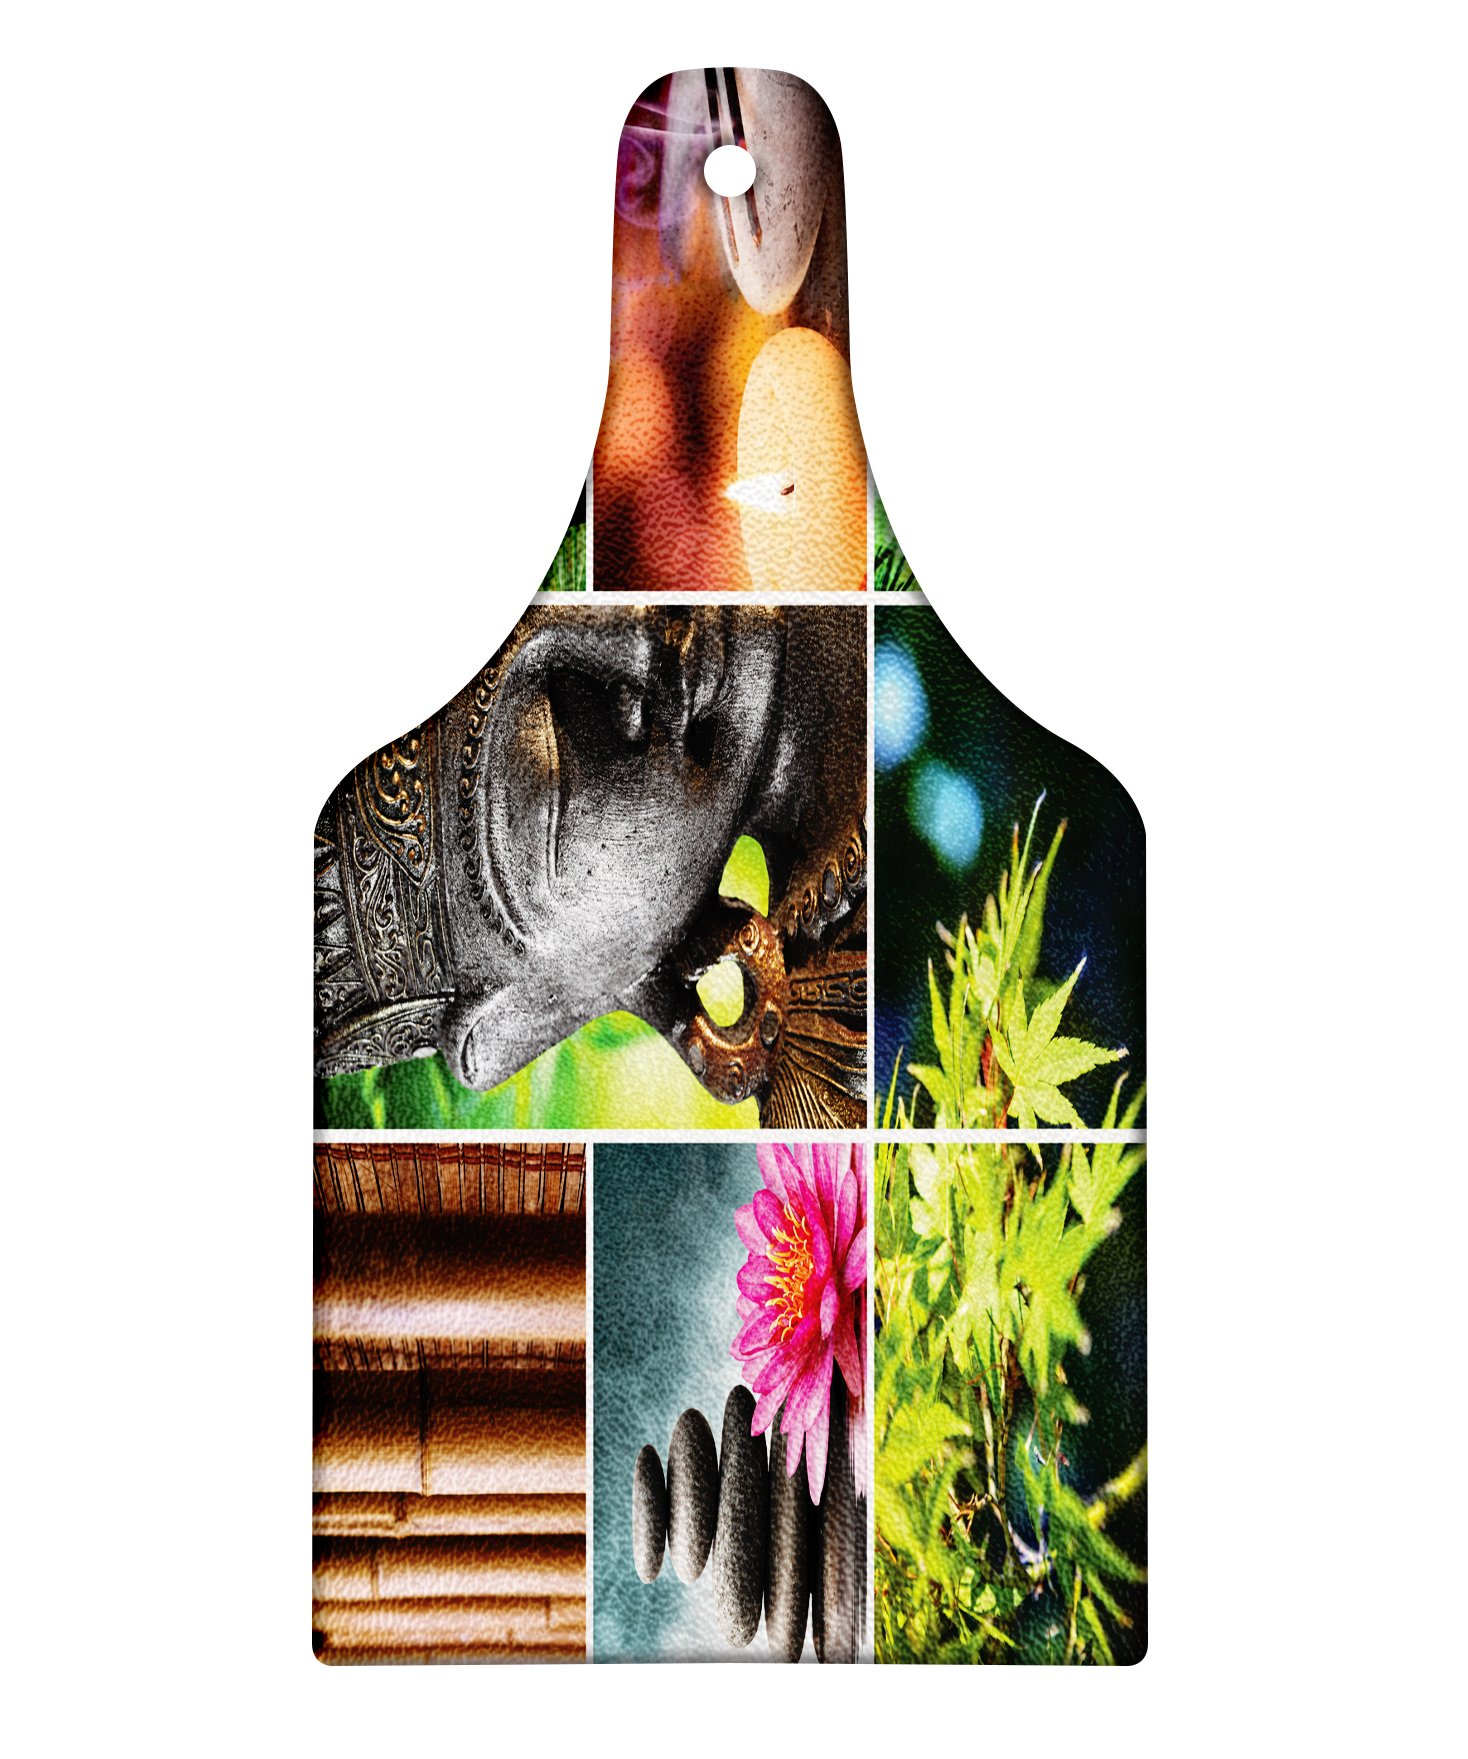 Lunarable Spa Cutting Board, Oriental Culture Mosaic Meditation Themed Aroma Candles Water Sounds Nature, Decorative Tempered Glass Cutting and Serving Board, Wine Bottle Shape, Umber Lime Green Pink